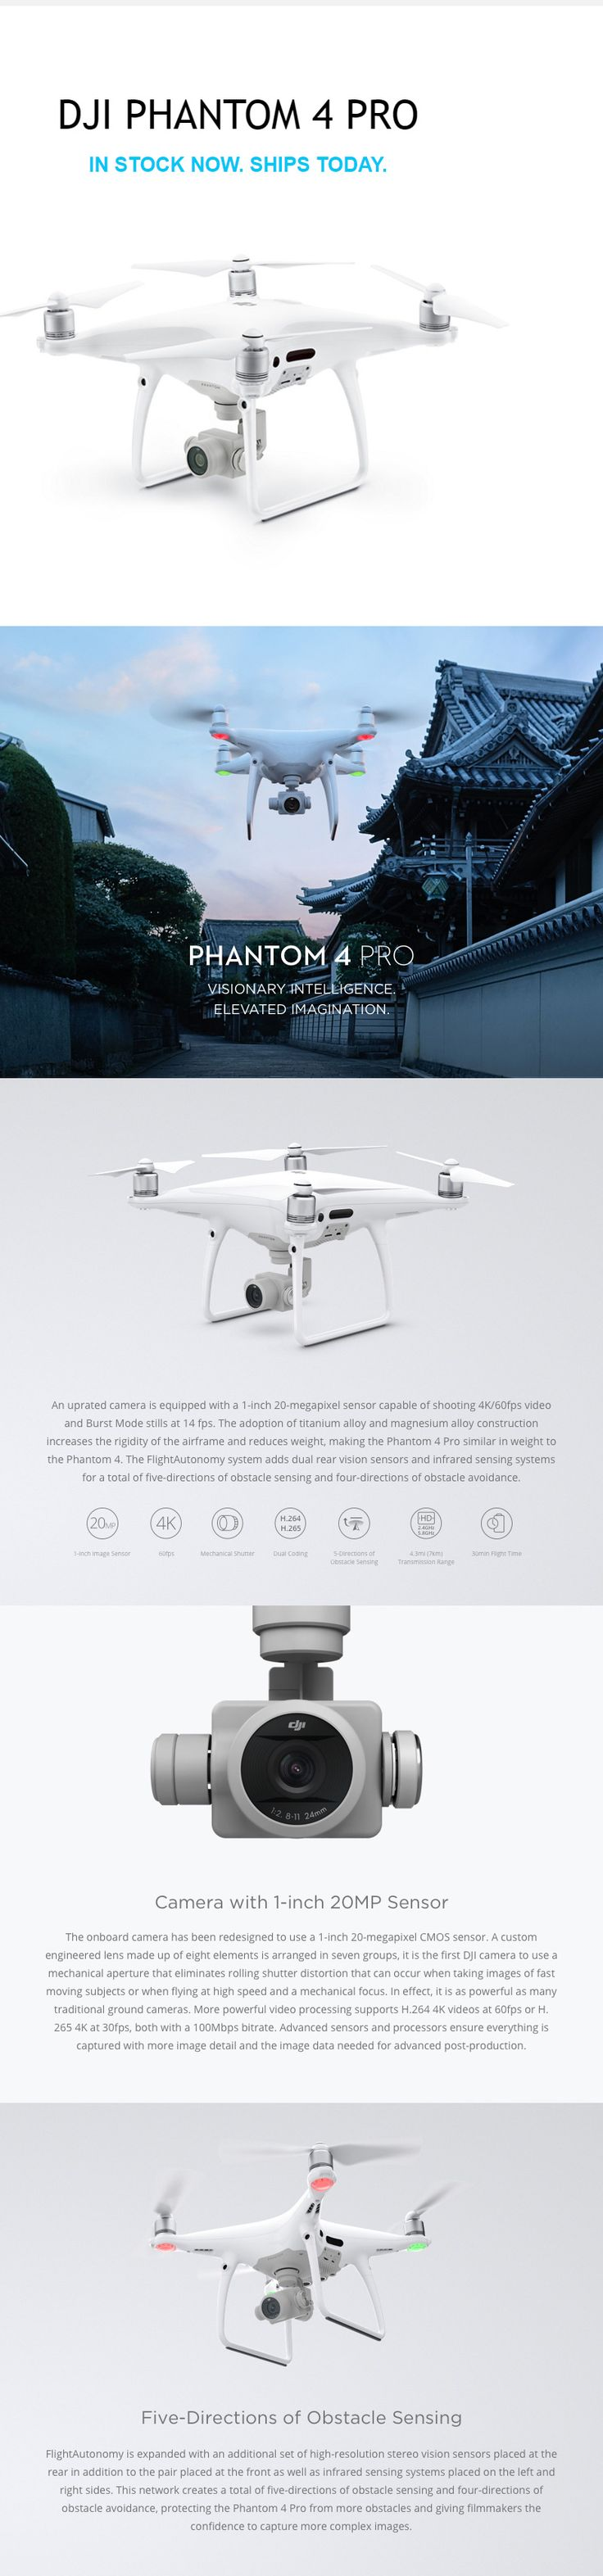 "DJI PHANTOM 4 PRO DRONE with Gimbal Camera with 1"" CMOS Sensor. 4K 60fps.  